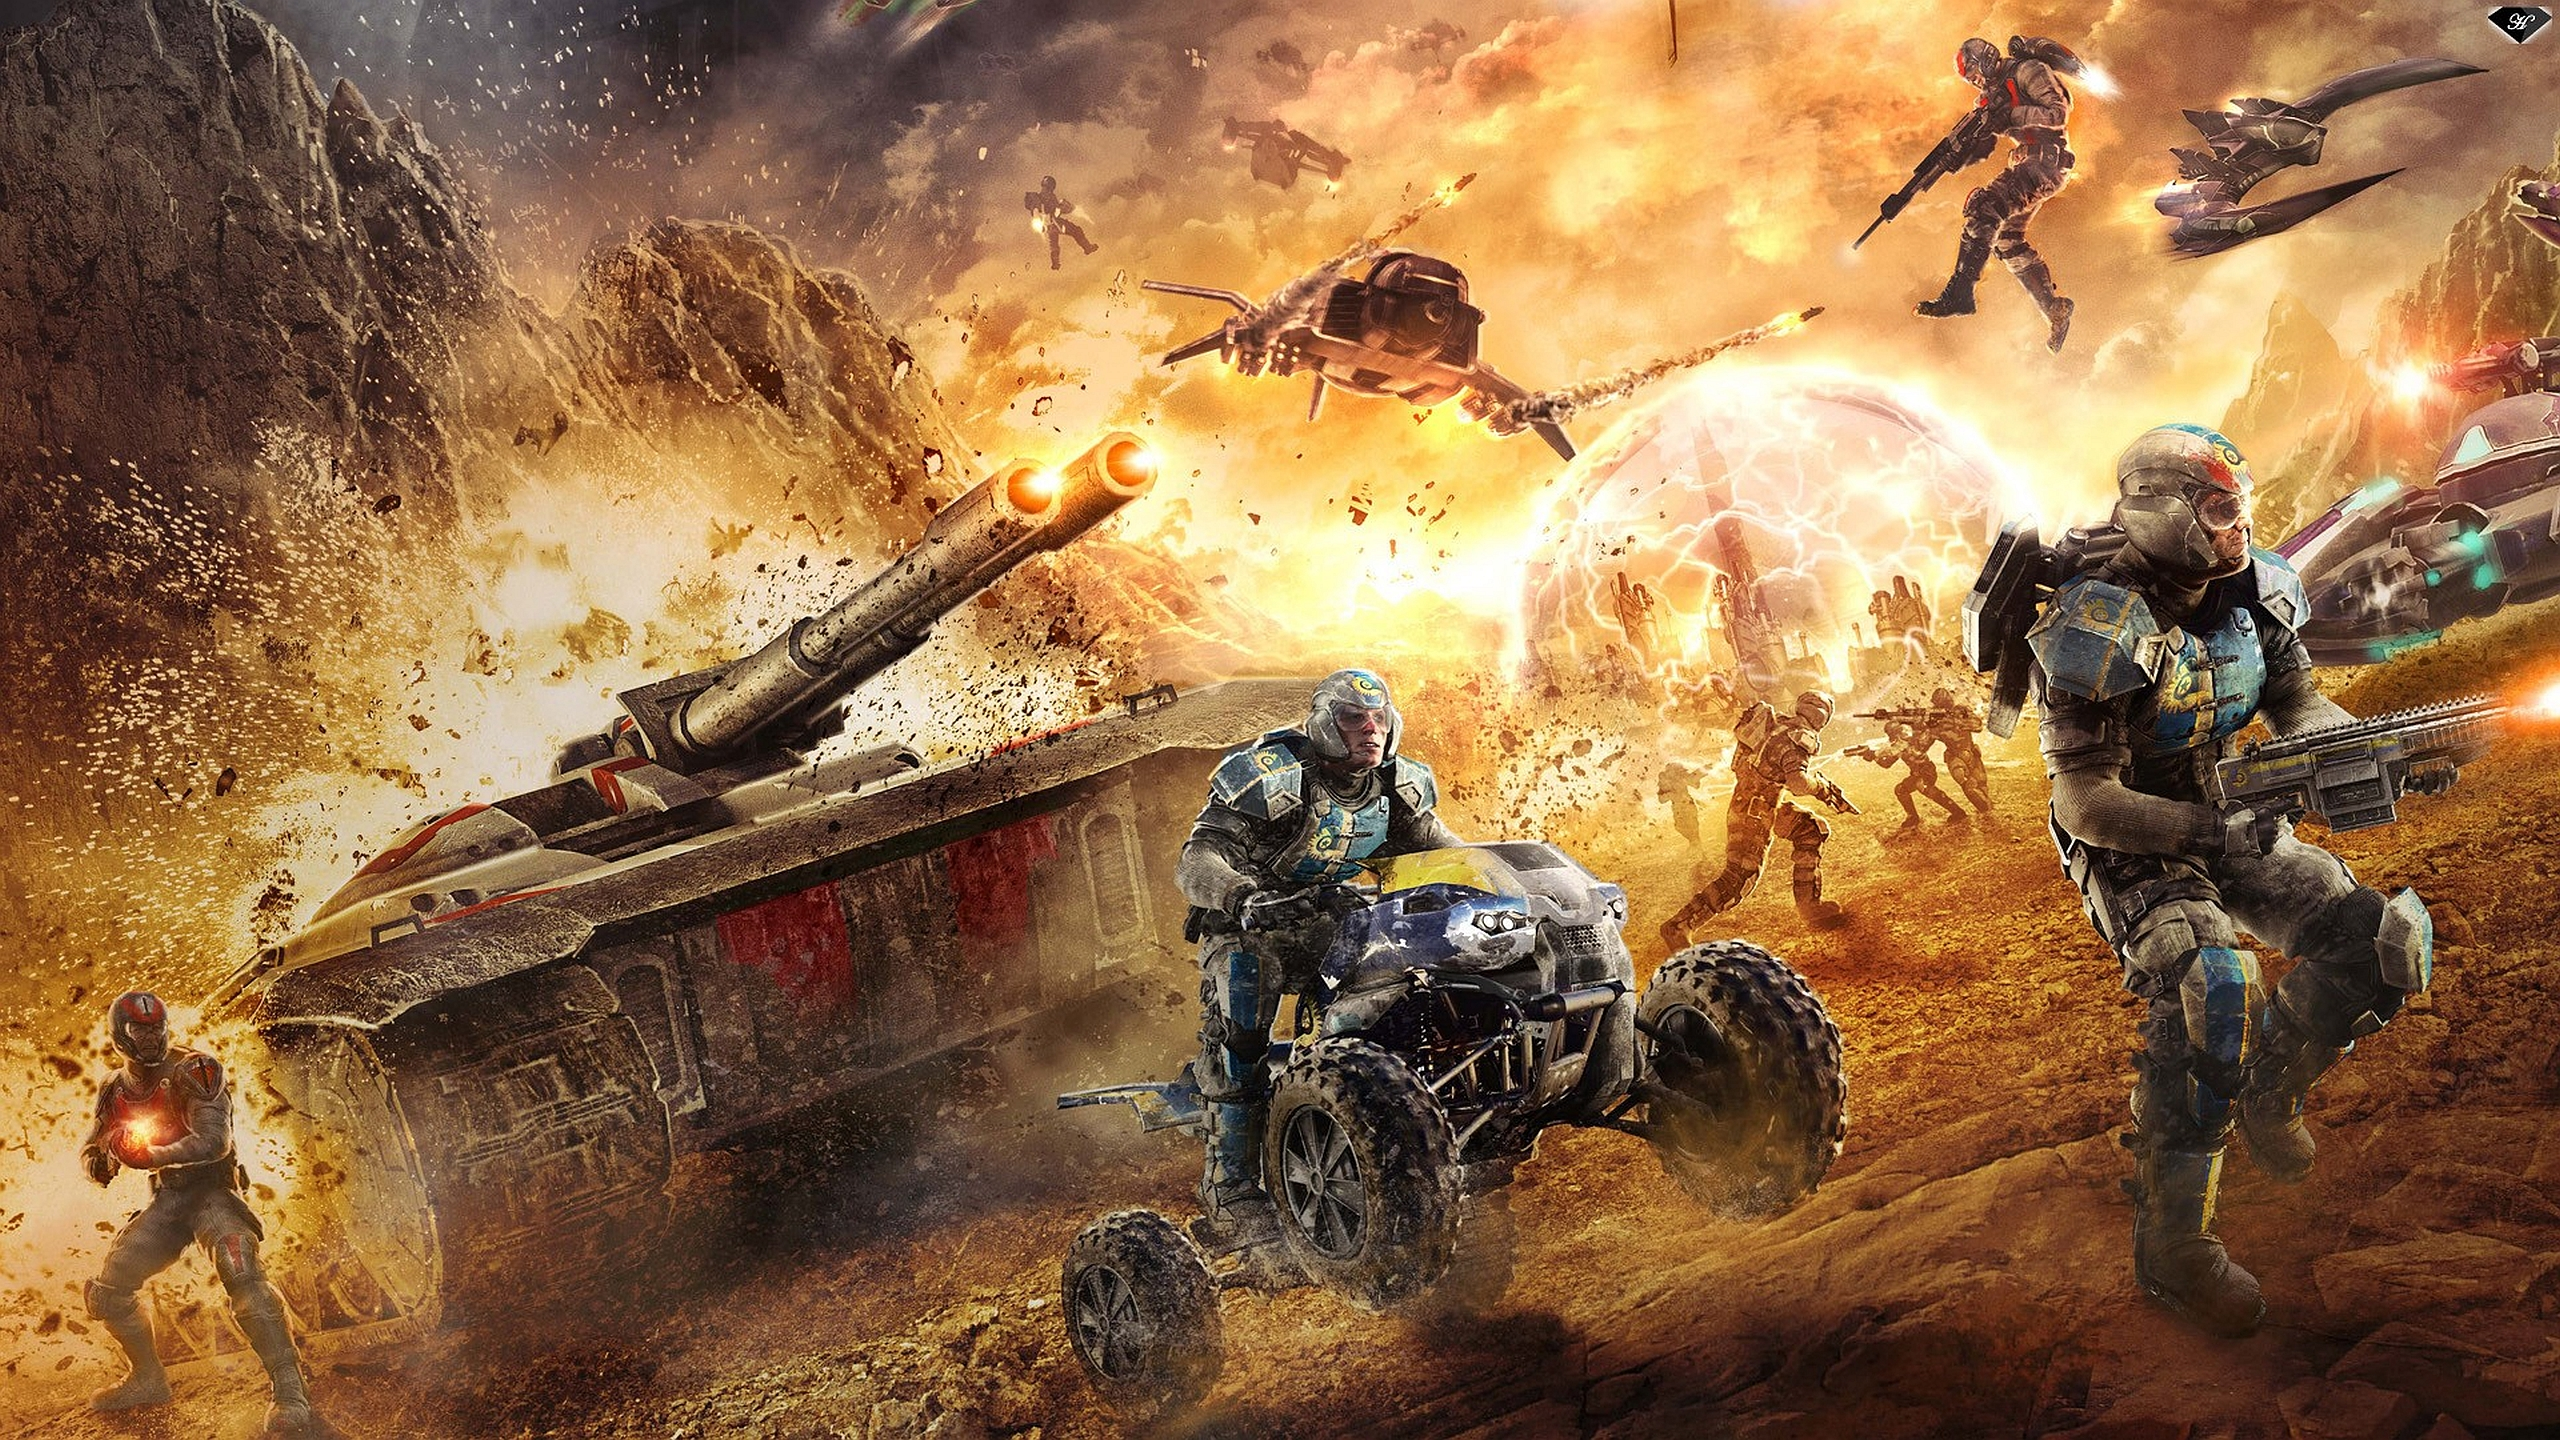 33 Planetside 2 HD Wallpapers Background Images 2560x1440